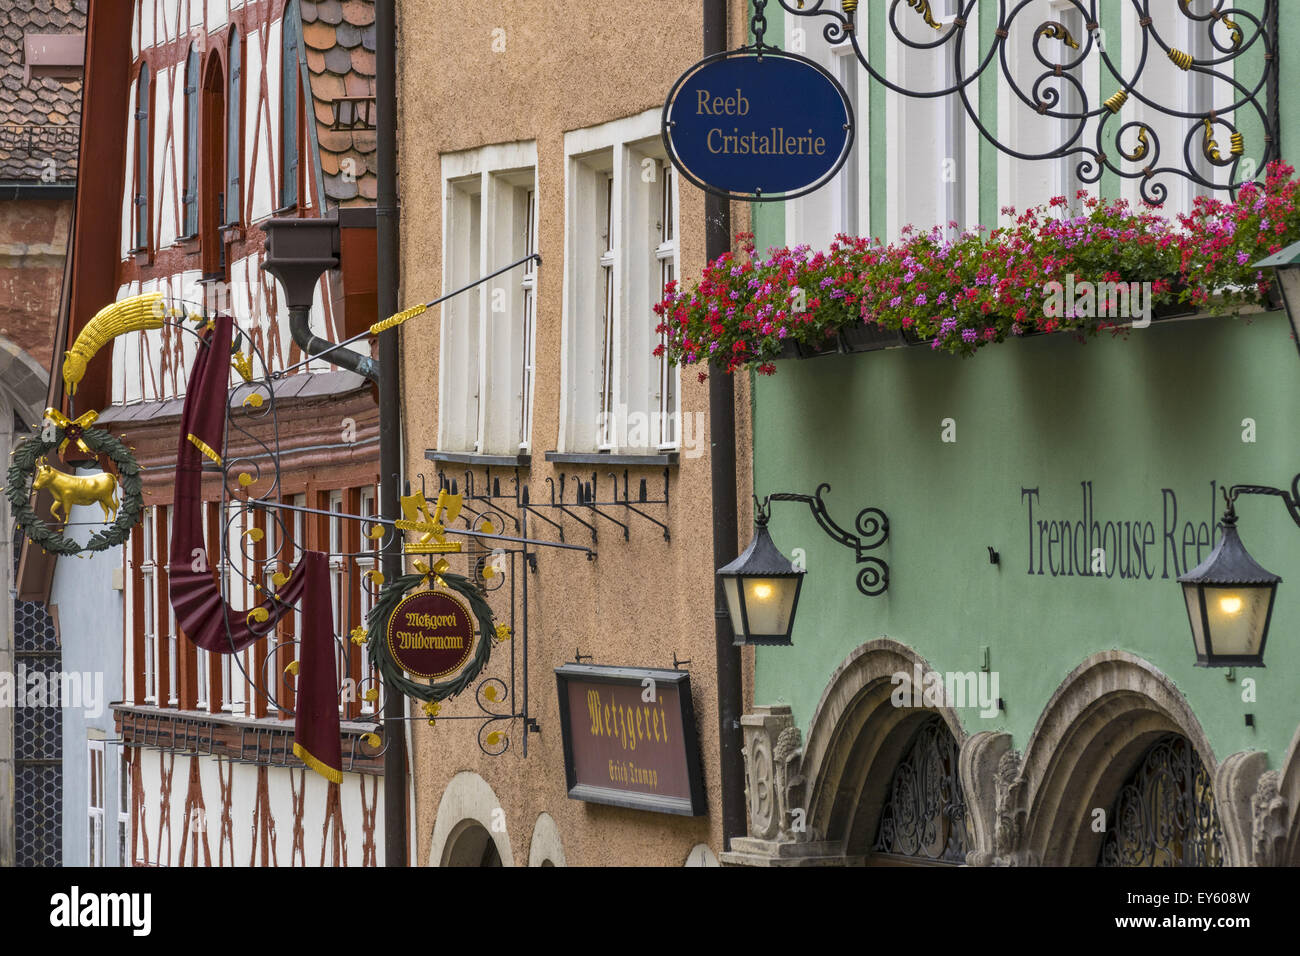 Typical, Hanging Signs, Signboards, Rothenburg ob der Tauber, Middle Franconia, Bavaria, Germany - Stock Image